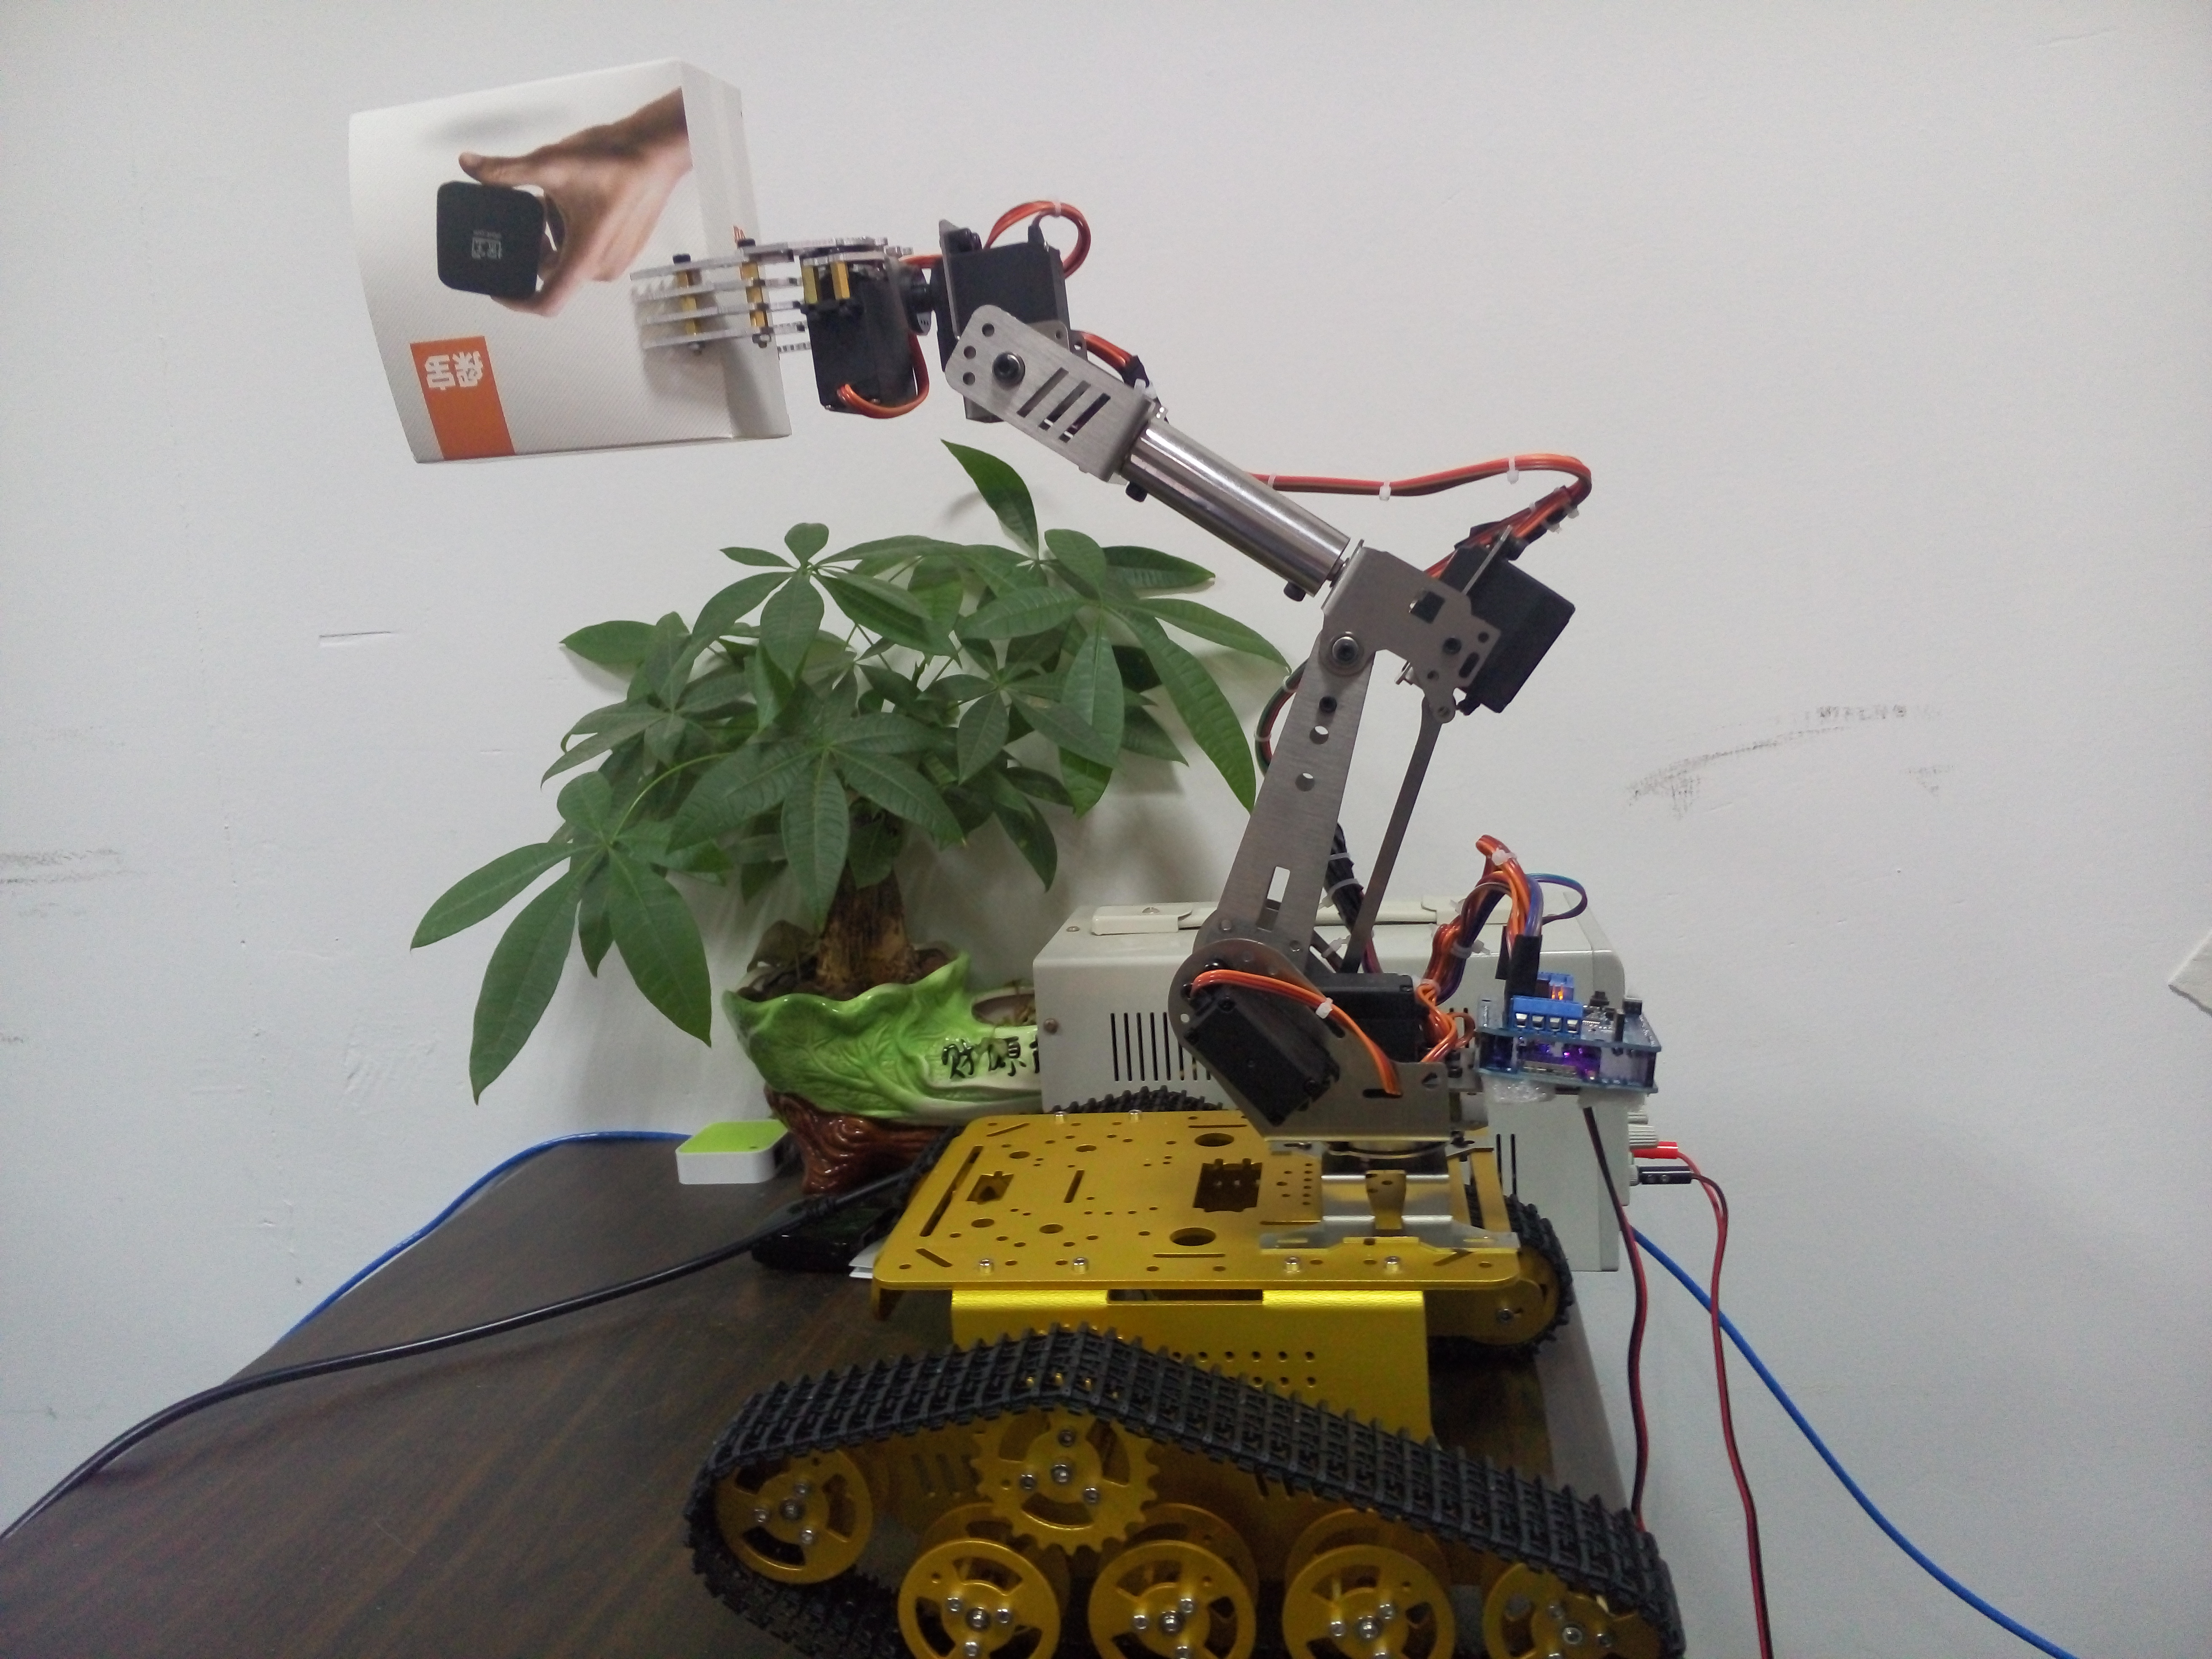 Entrant 60 : ESP8266 controlled 6 DOF robot arm on tank - Everything